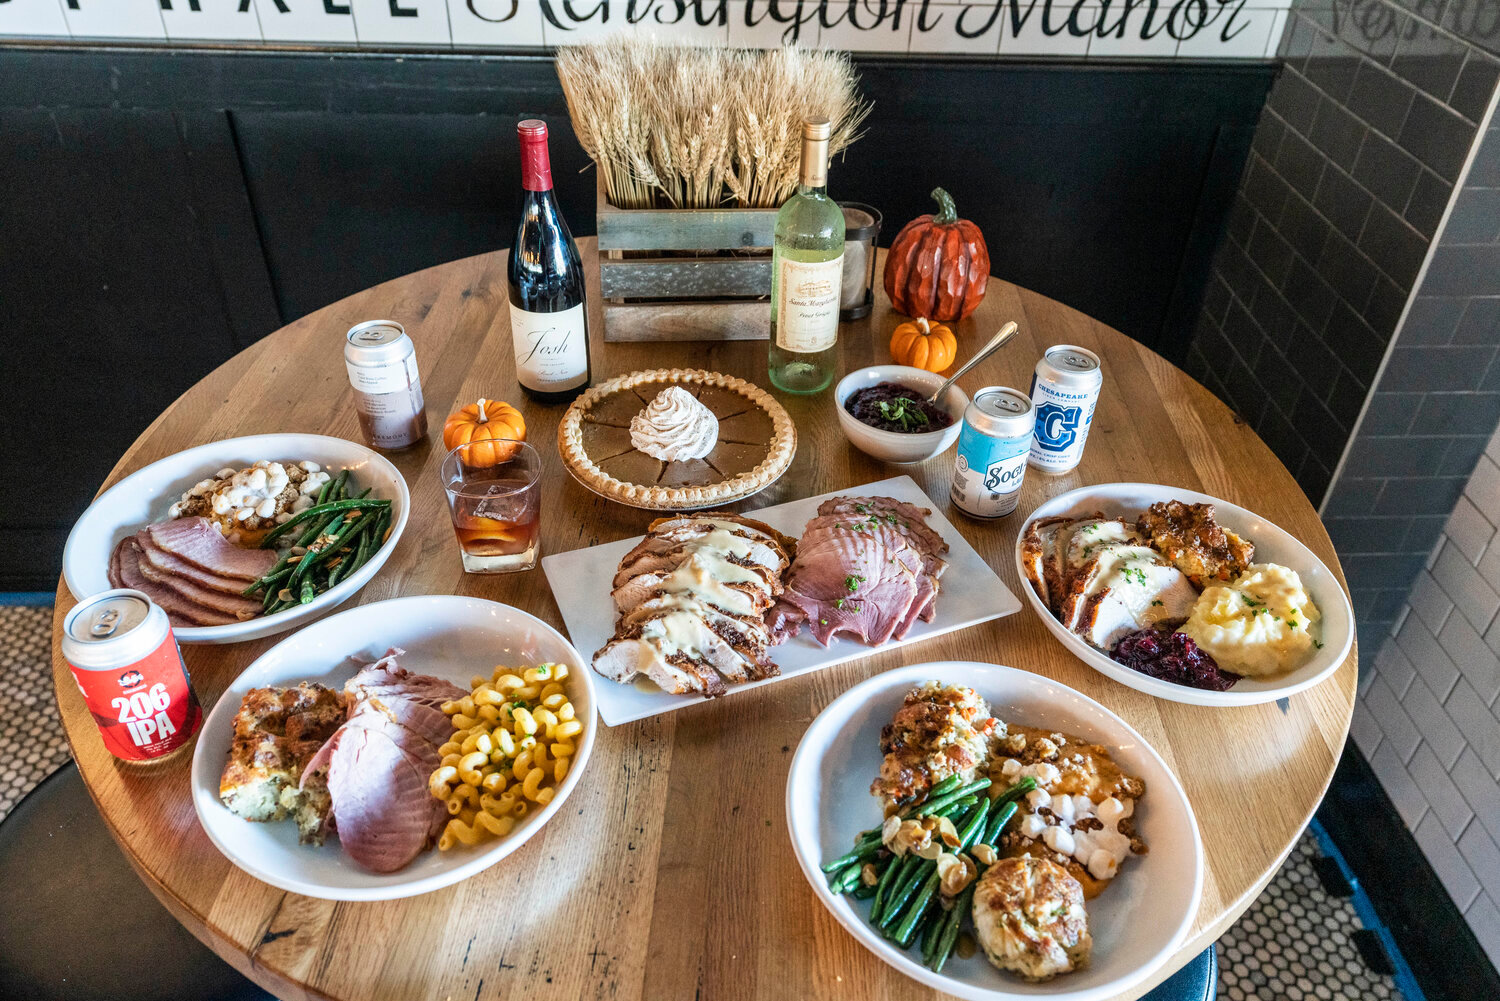 Park Tavern's traditional turkey dinner has white and dark meat, sausage stuffing, mashed potatoes, green beans, sweet potato casserole, turkey gravy and cranberry chutney.